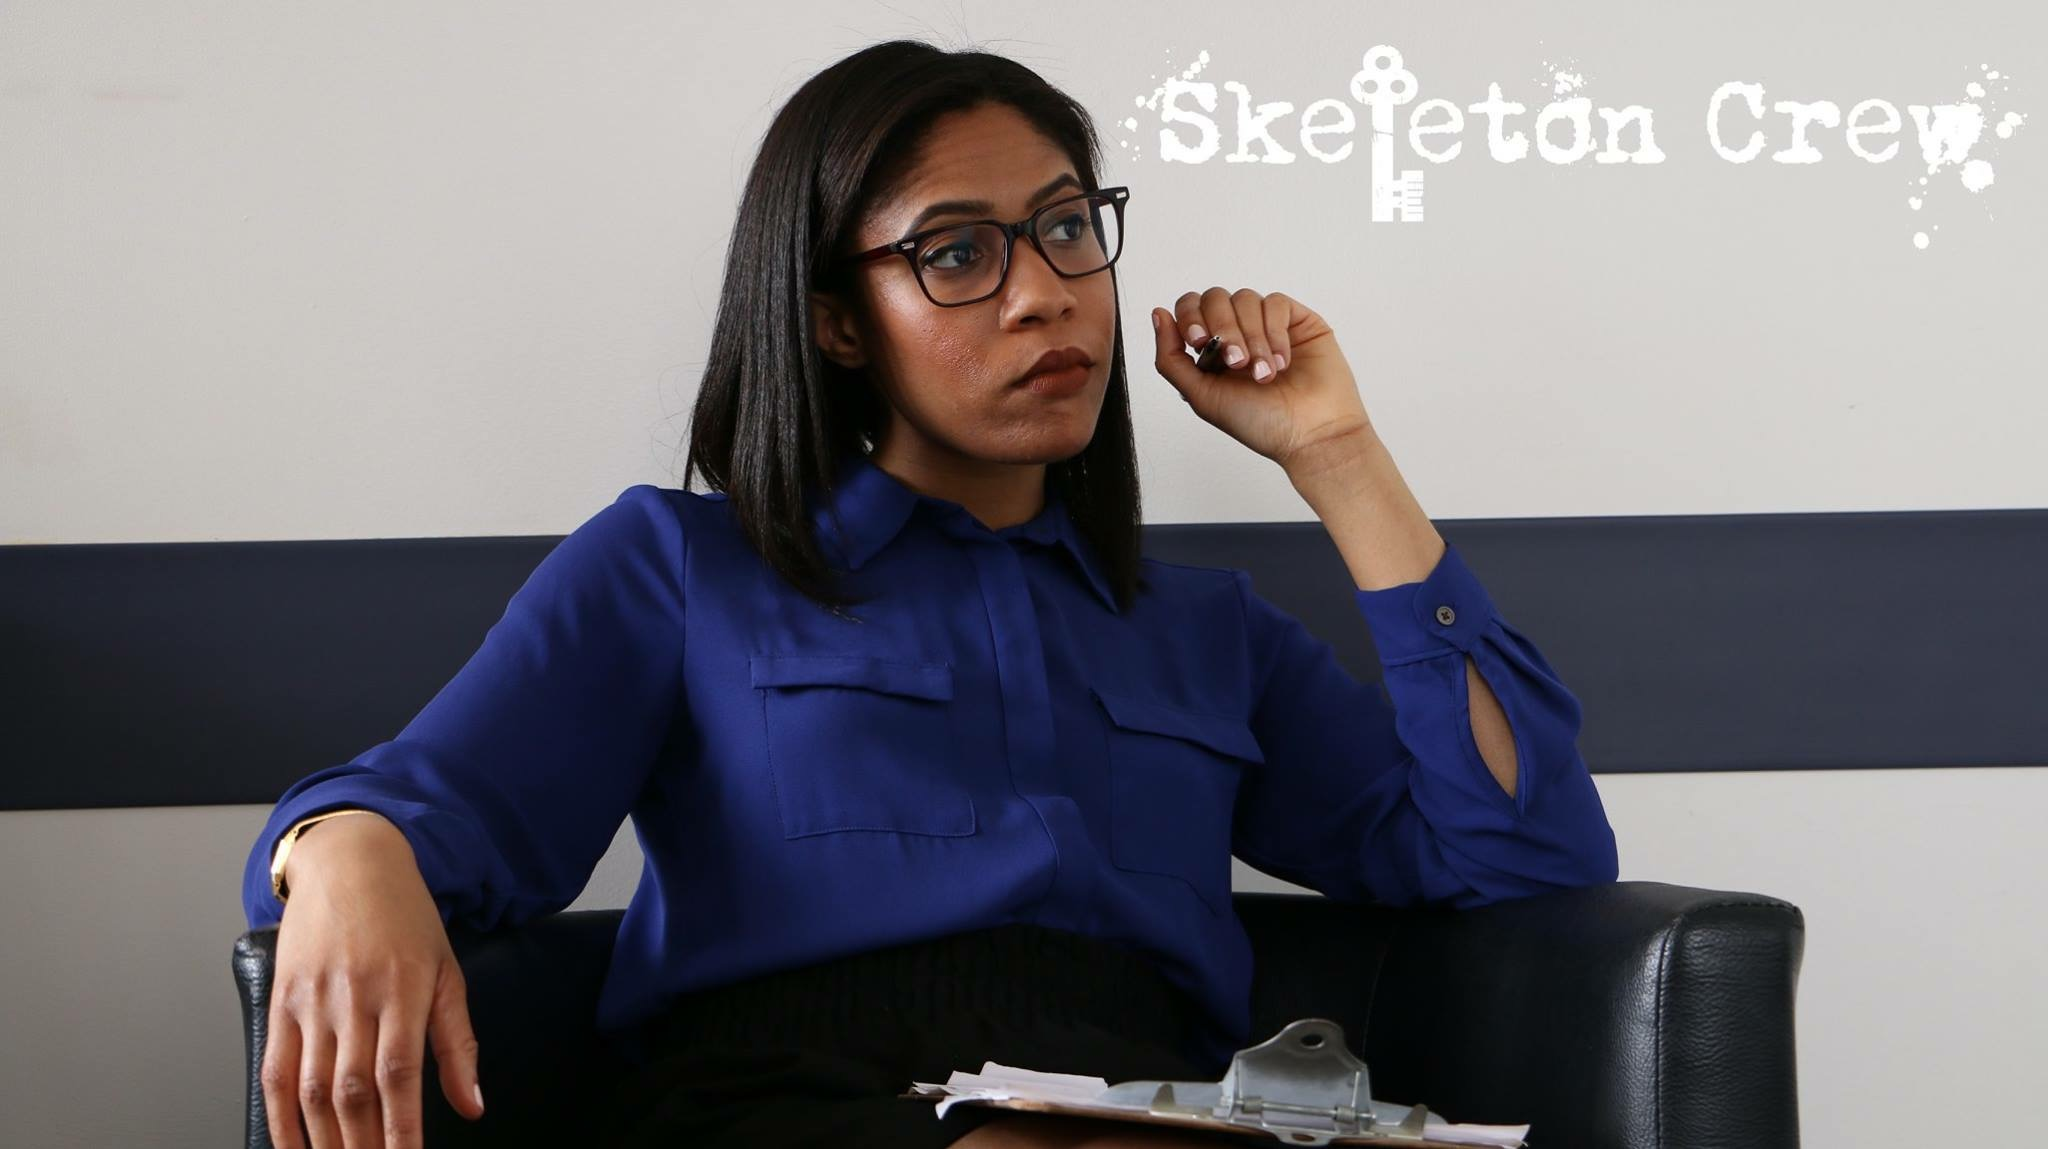 Marchelle reprising her role of Dr. Mestor in the web series  Skeleton Crew .